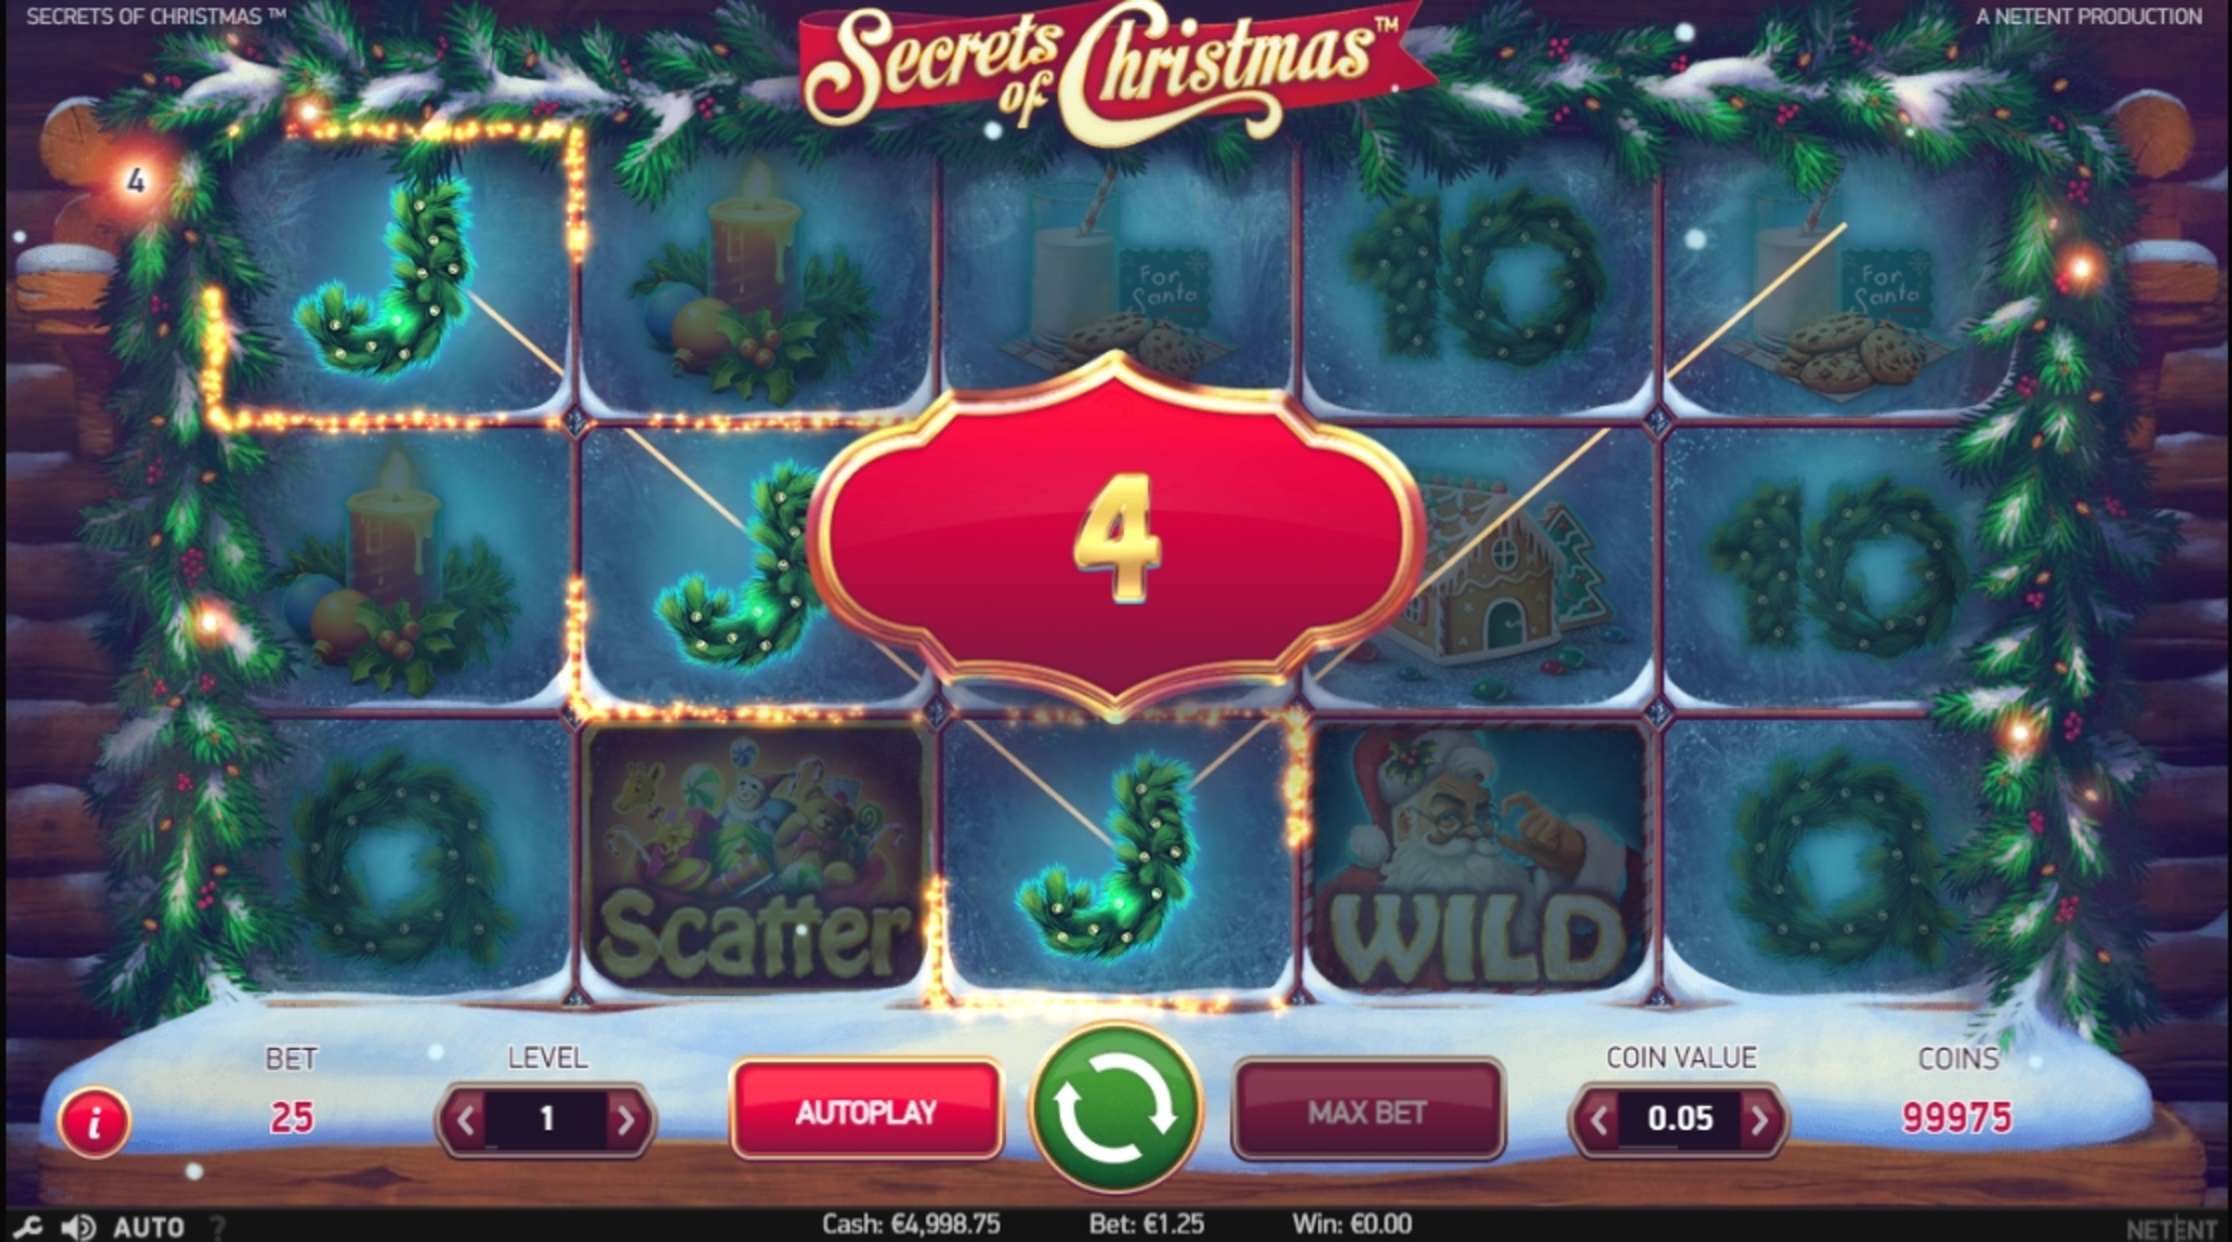 Win Money in Secrets of Christmas Free Slot Game by NetEnt